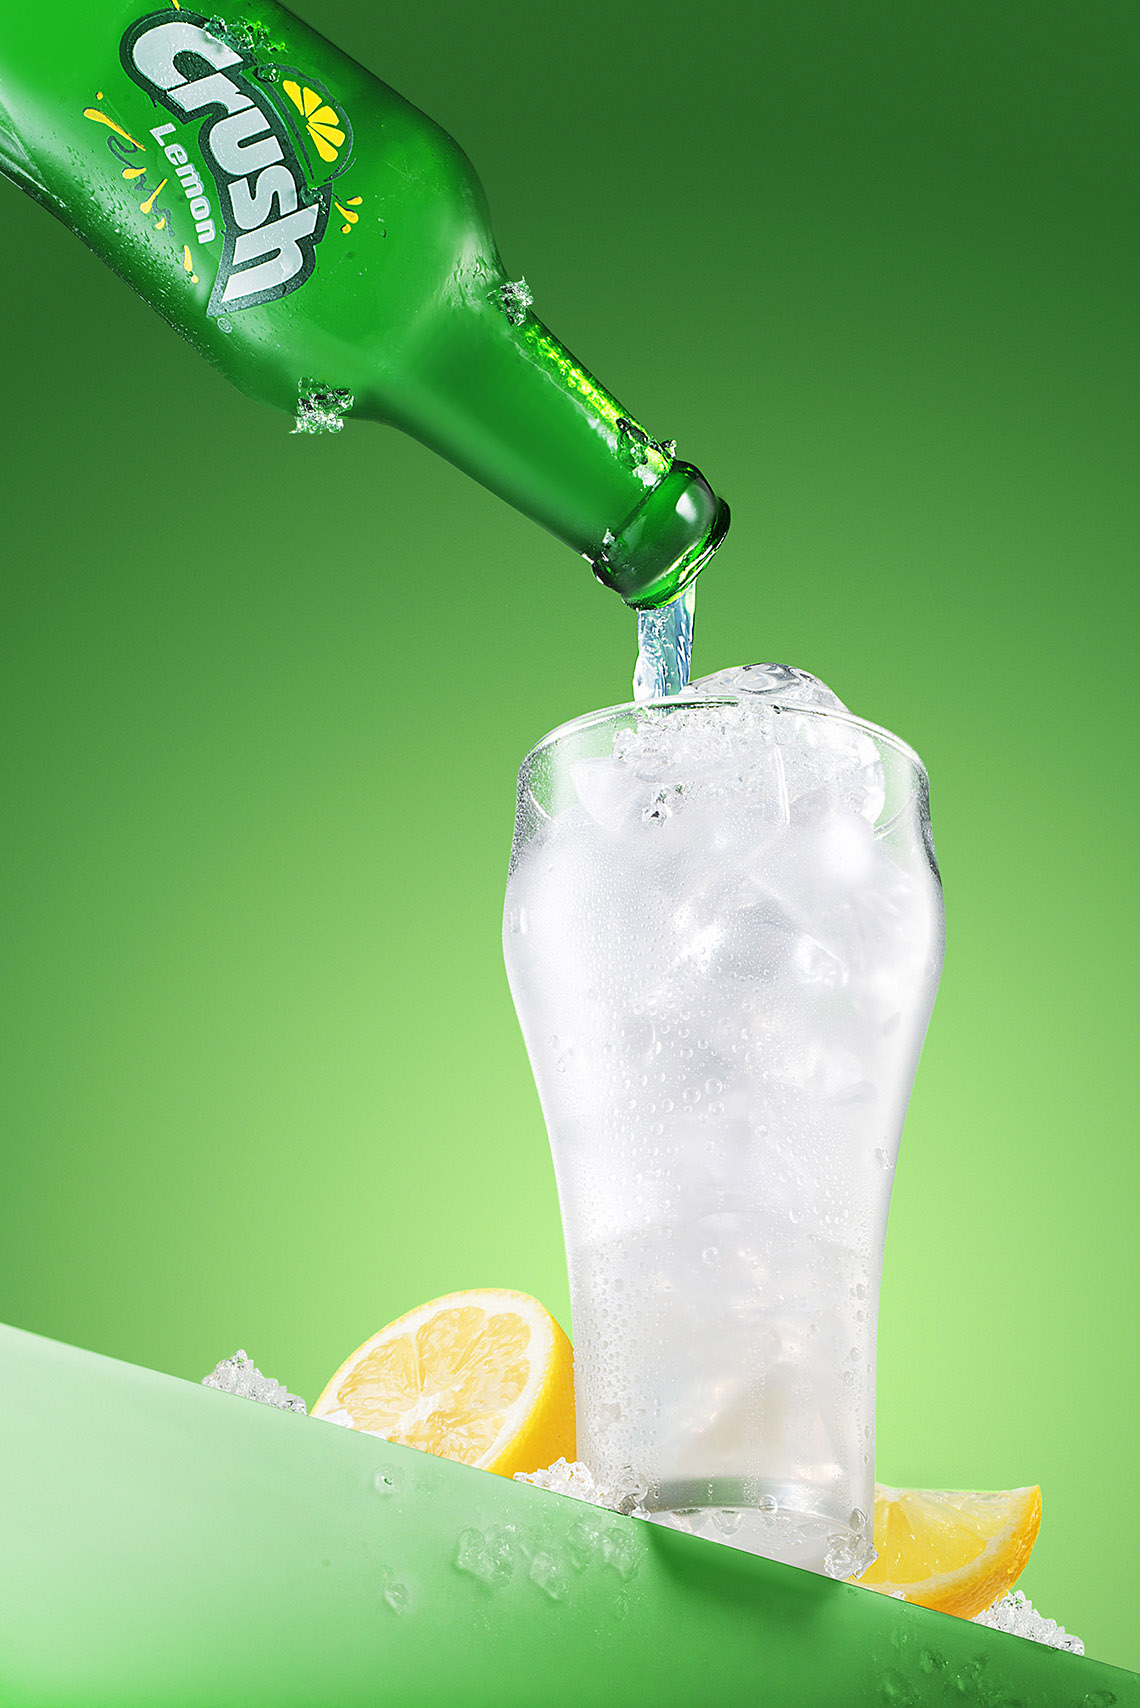 New-york-premier-beverage-photographer-crush-pour